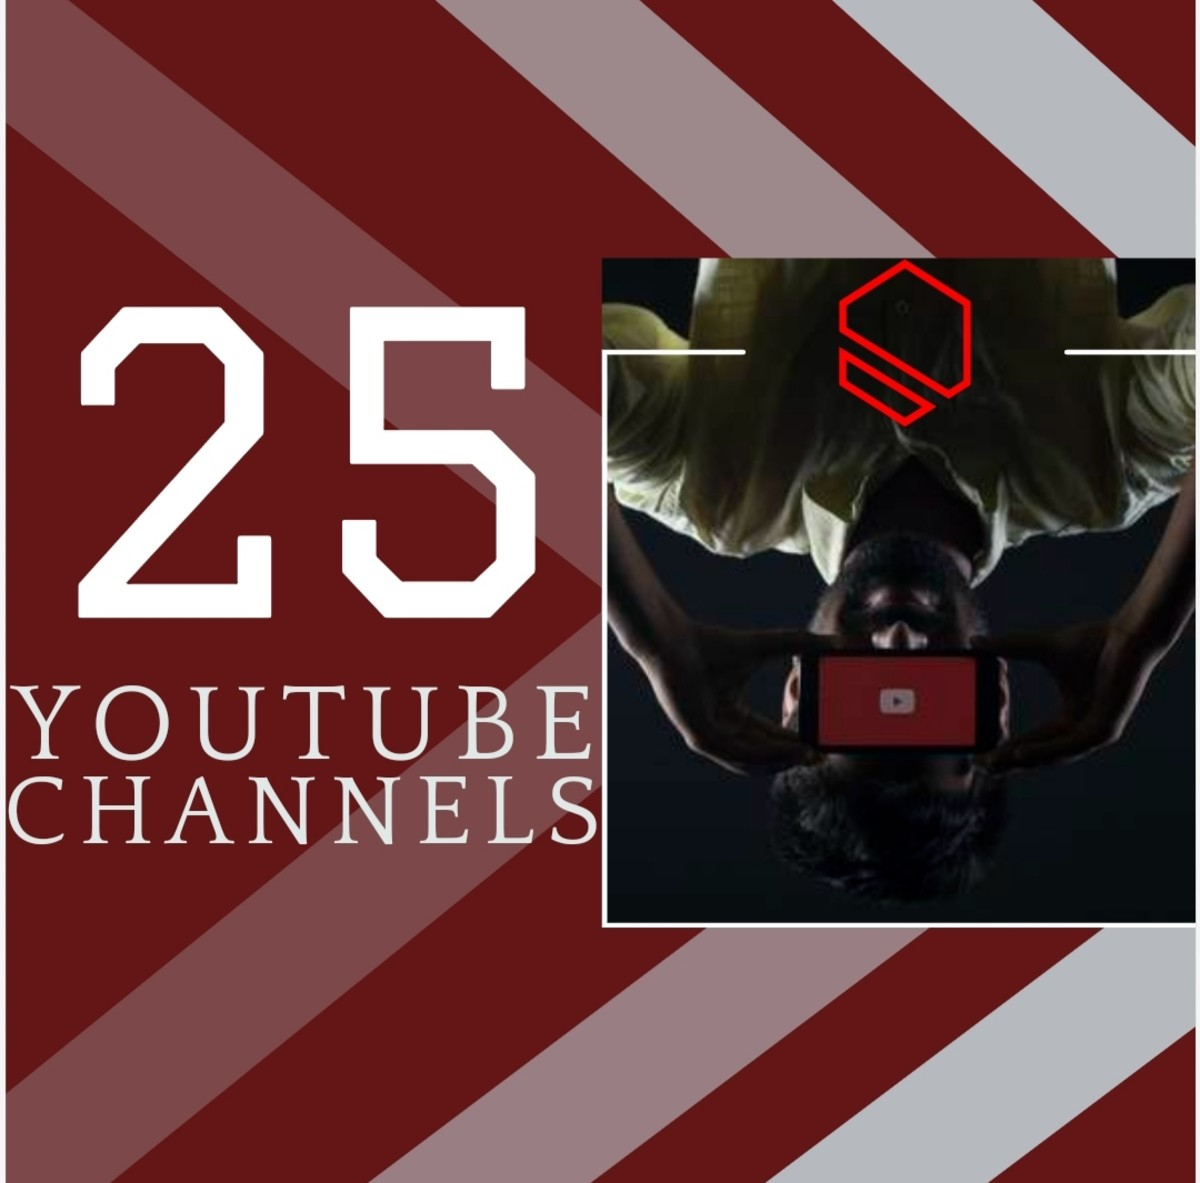 25 YouTube Channels you can subscribe to and binge-watch.